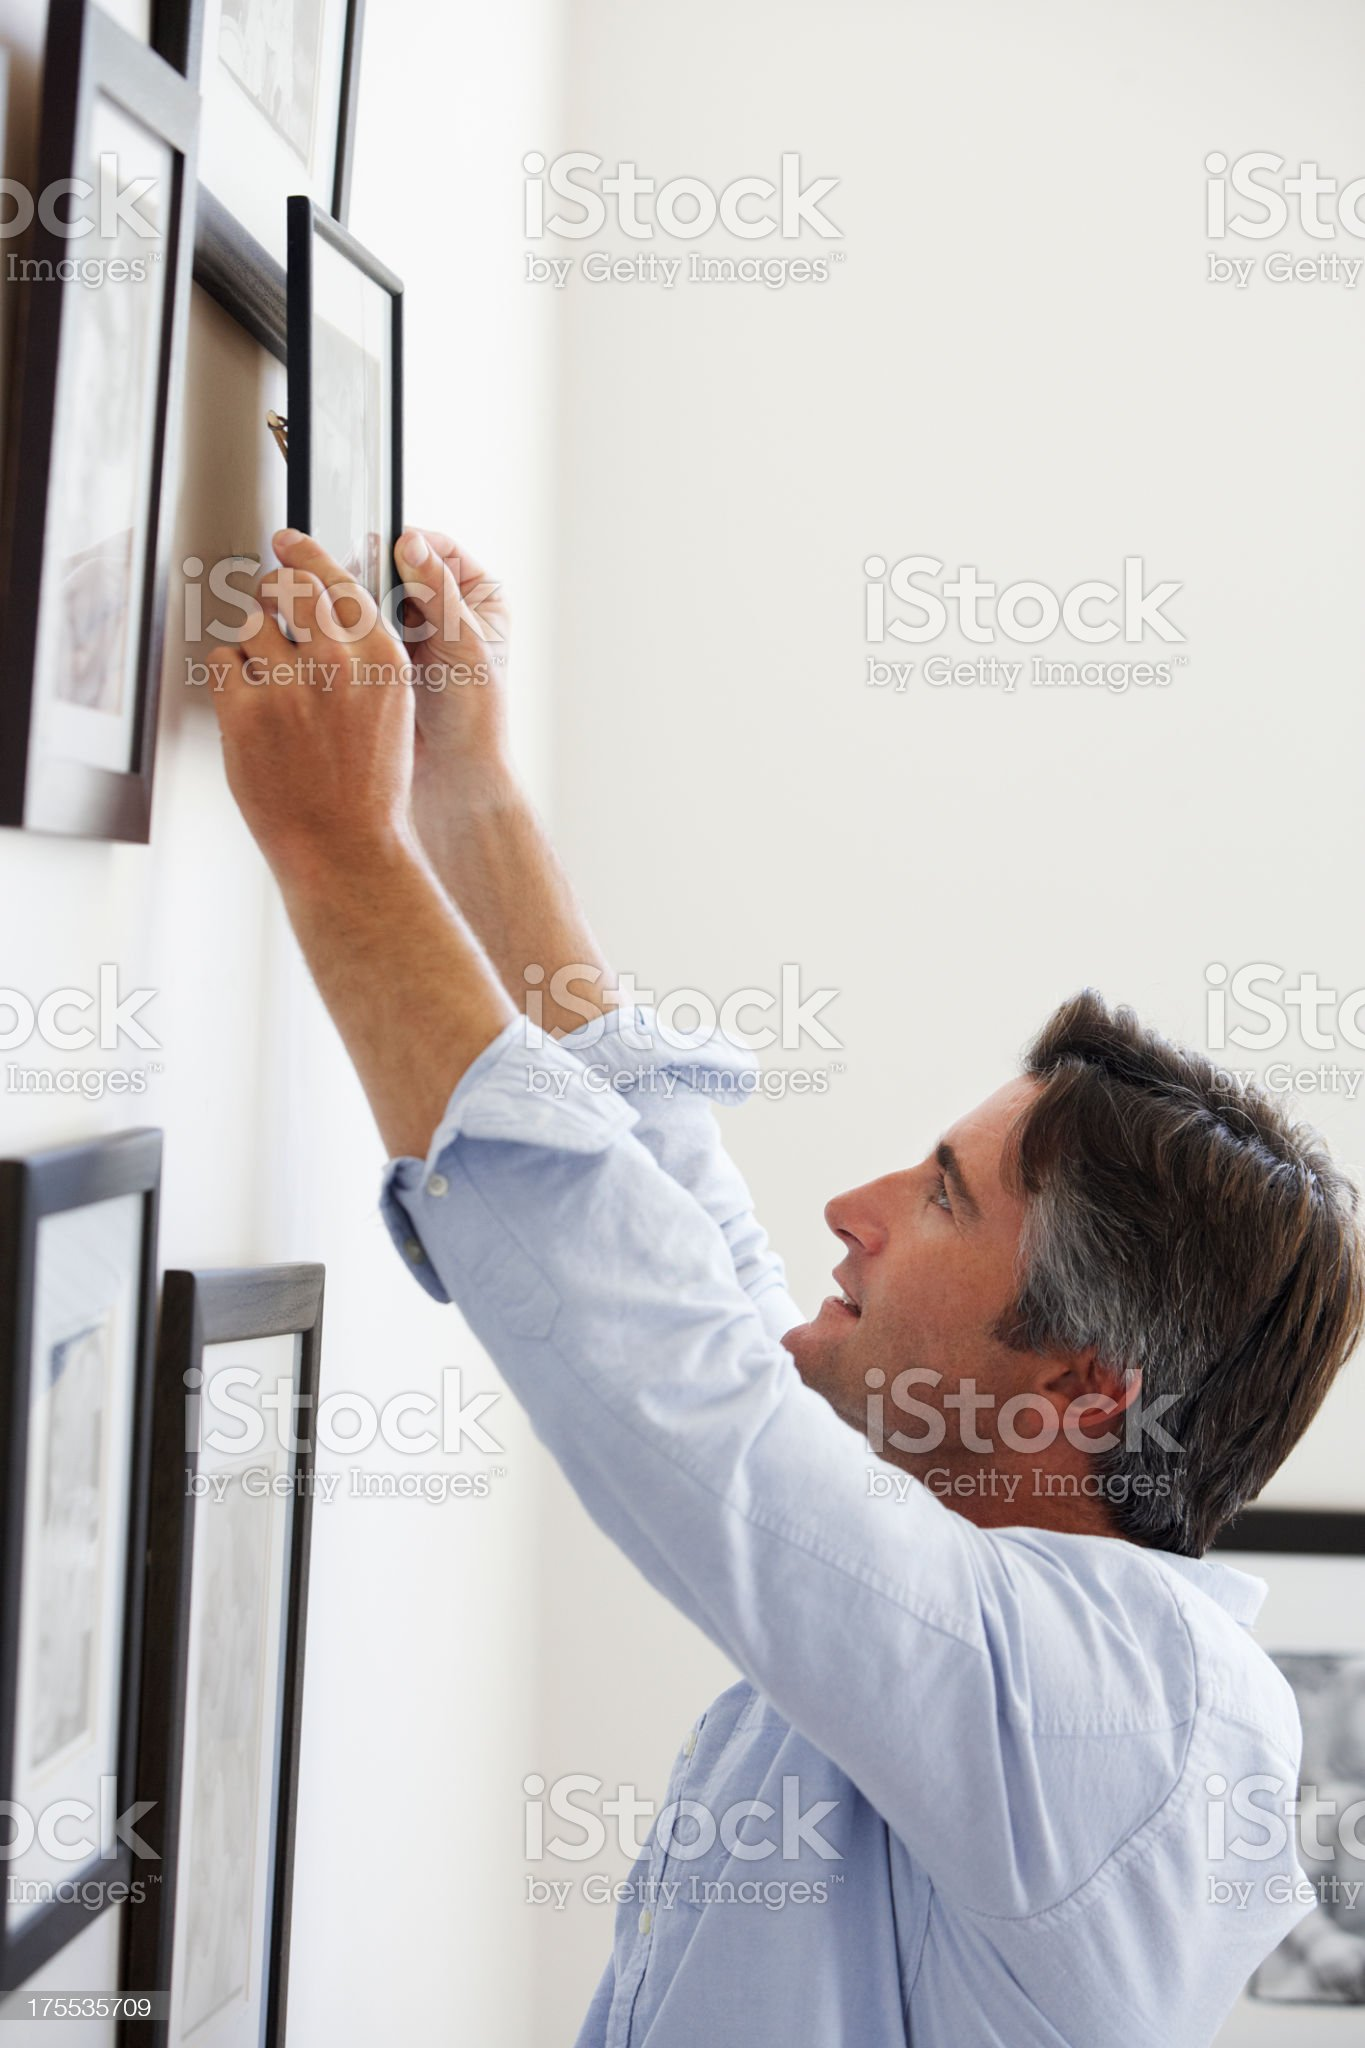 Man Hanging Picture Frames On Wall At Home royalty-free stock photo